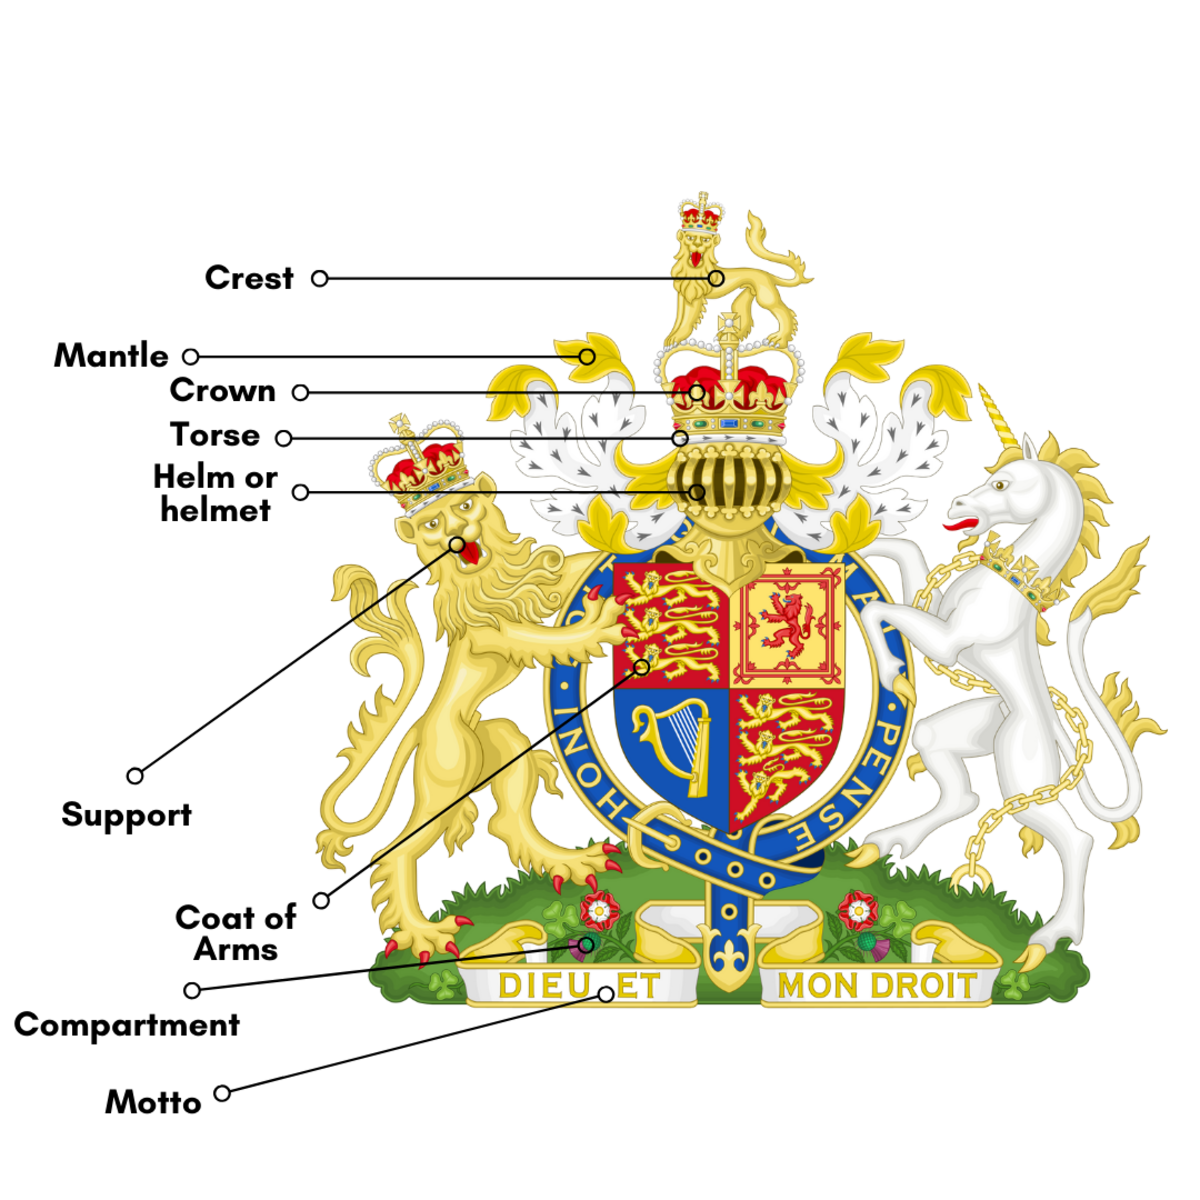 Major elements of a coat of arms labeled.